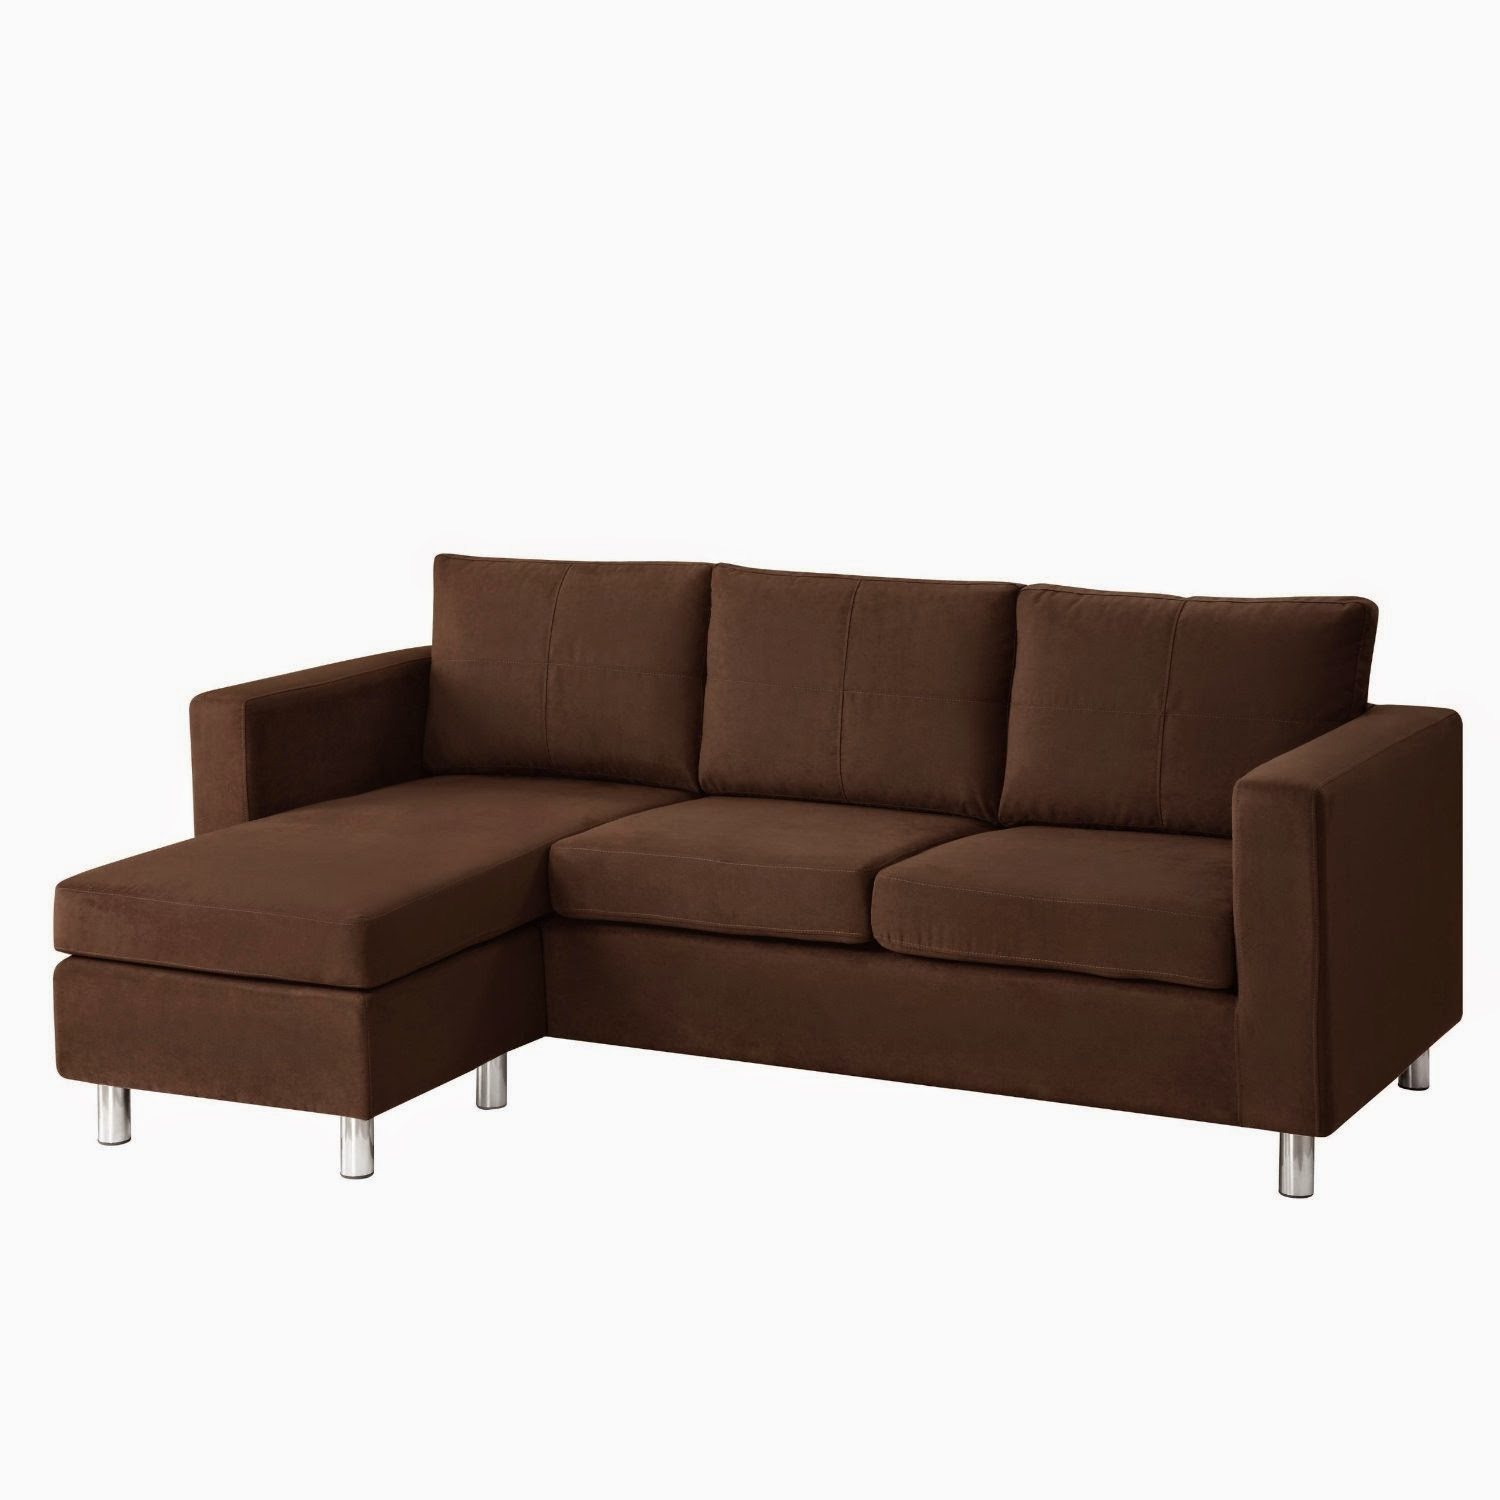 Cheap Leather Sectional Sofa Bowen Sleeper With Left Side Chaise Lounger